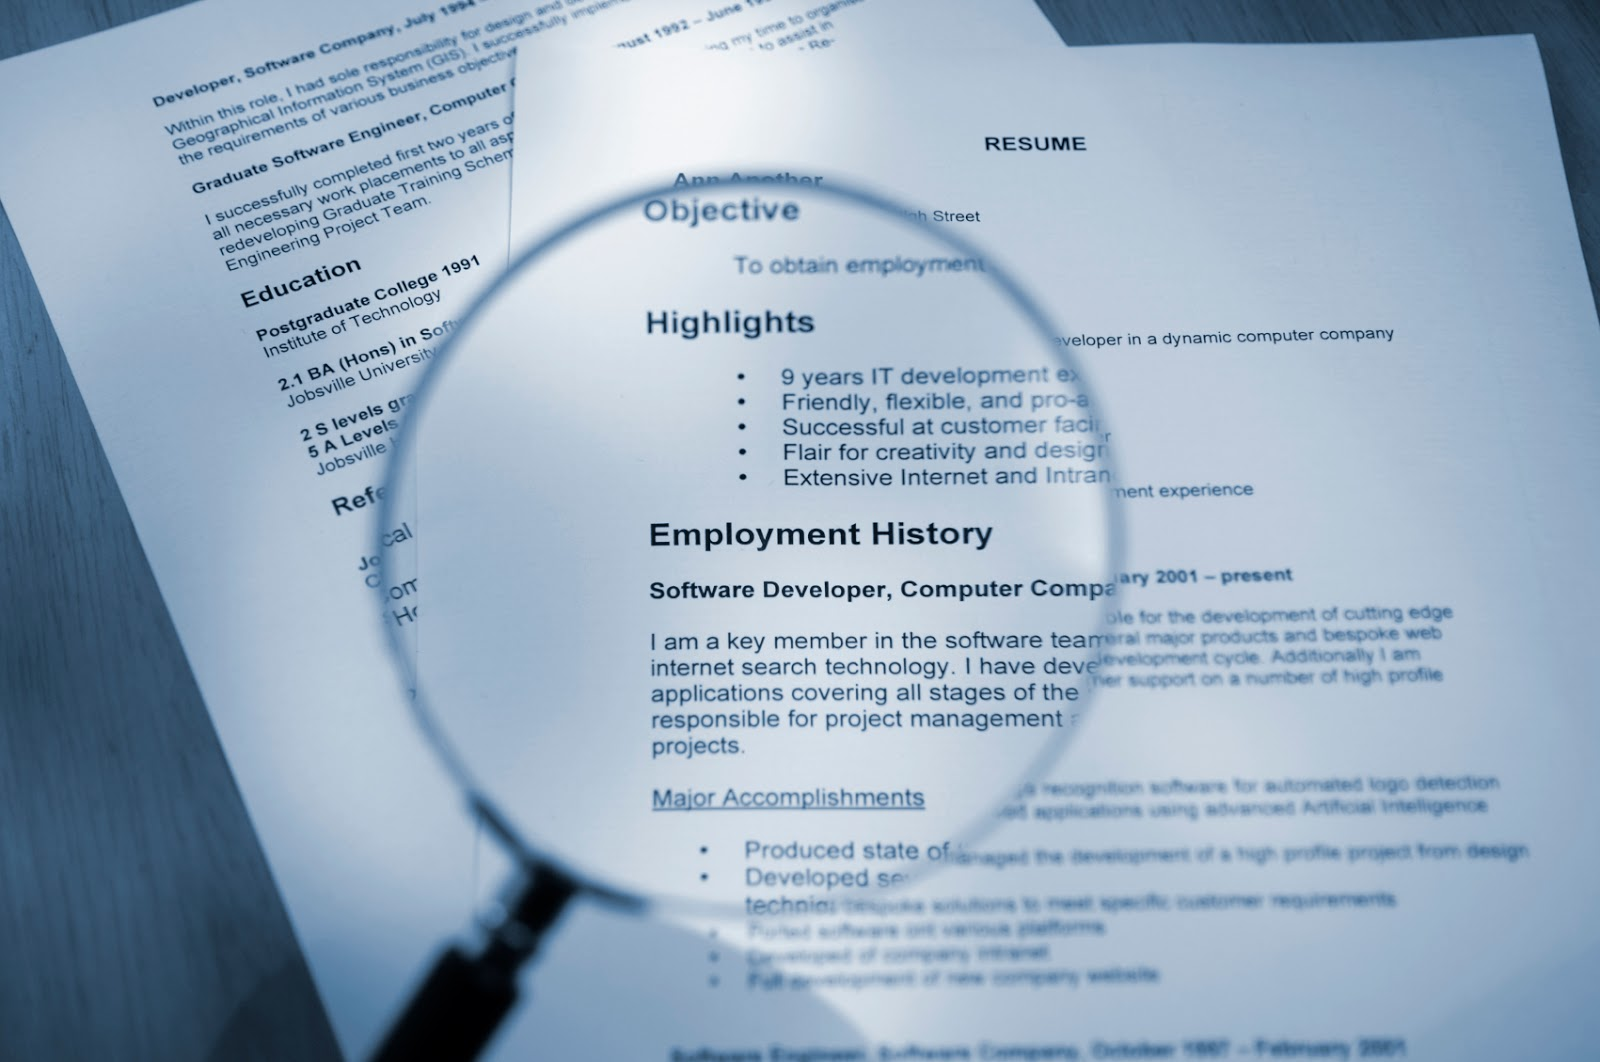 Hire a Hero, Hire a Vet®: Resume 101 - How to Read and Identify ...